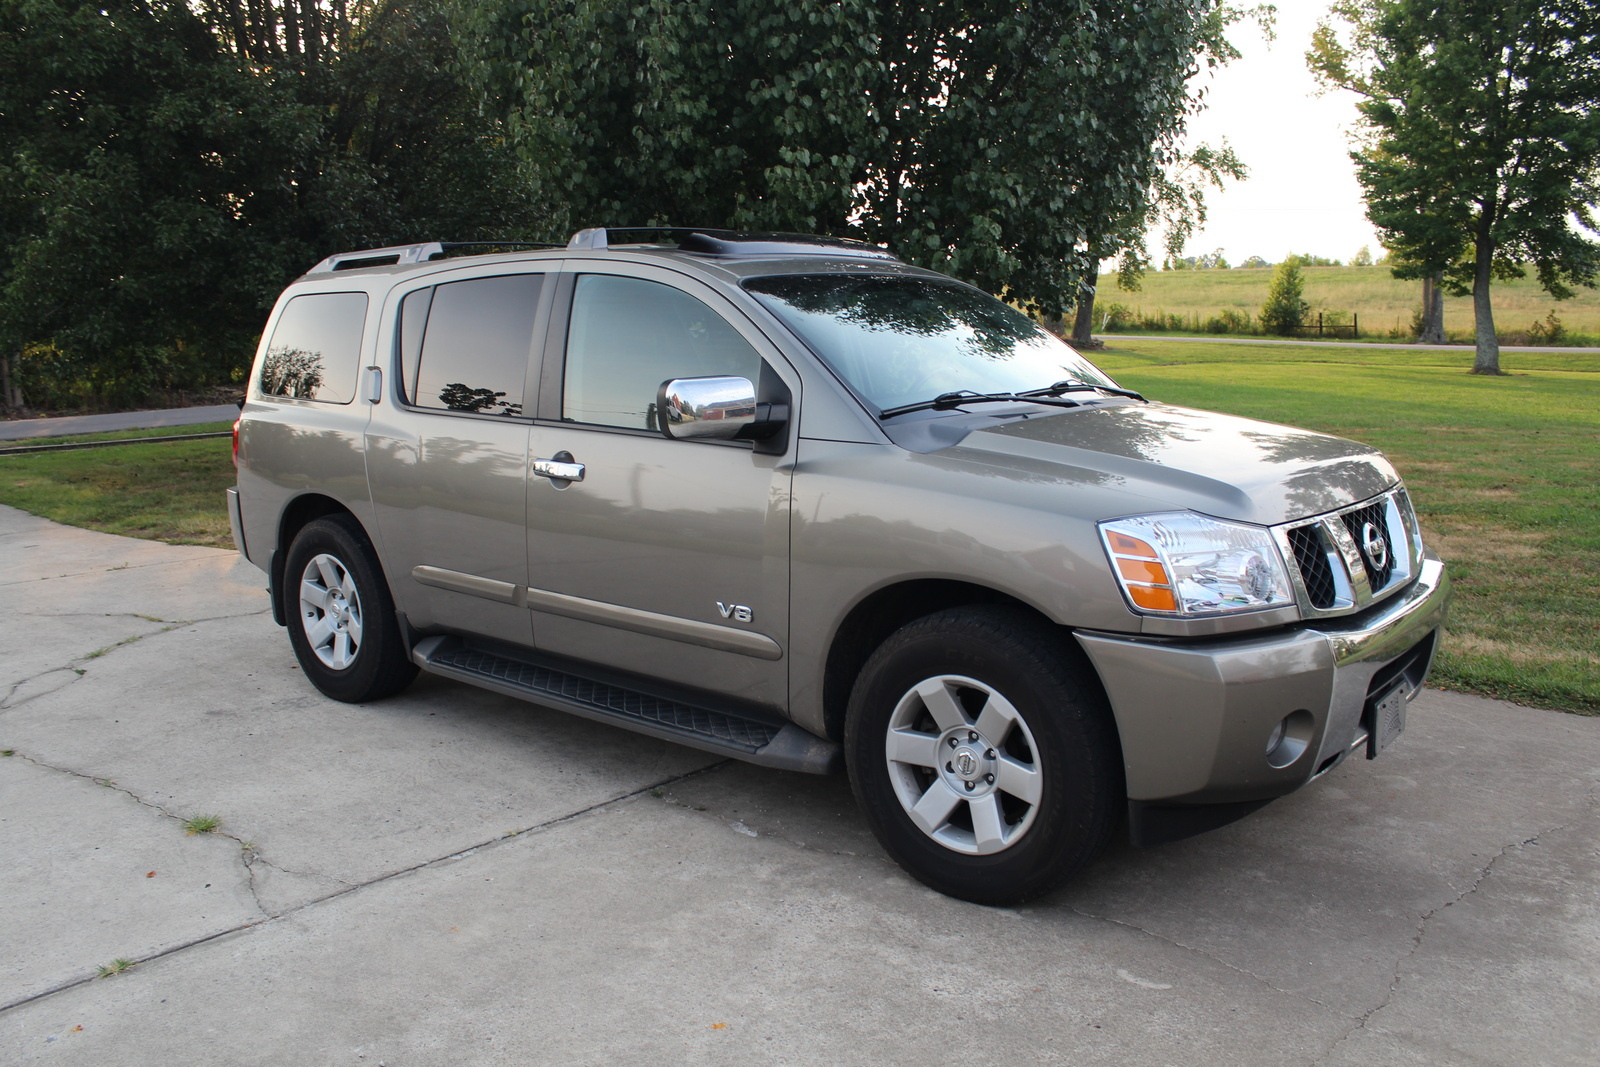 2001 jeep grand cherokee wiring diagrams with Diagram Of 2004 Nissan Armada on Diagram Of 2004 Nissan Armada in addition Watch likewise 444511 7 Pin Connector Not Working furthermore 93 Jeep Grand Cherokee Wiring Diagram likewise Transmission chrysler 45rfe.